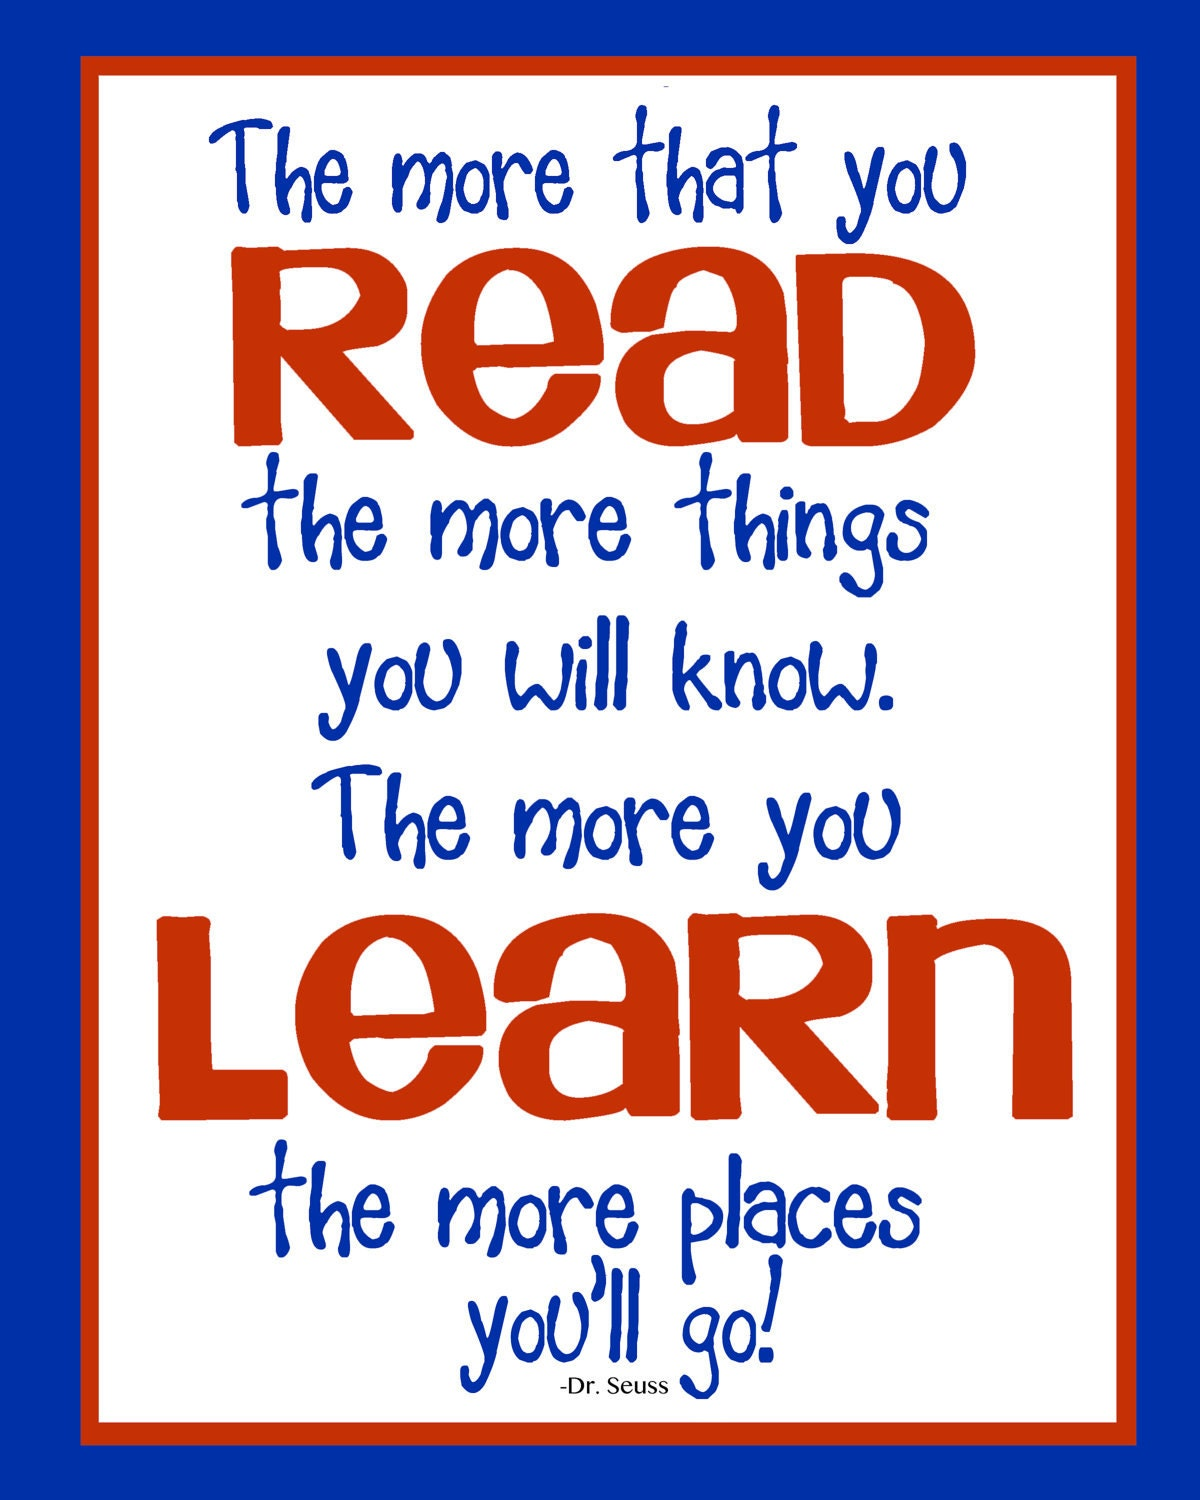 Dr Seuss Quotes Kid: Dr. Seuss Print The More That You READ Children Art By